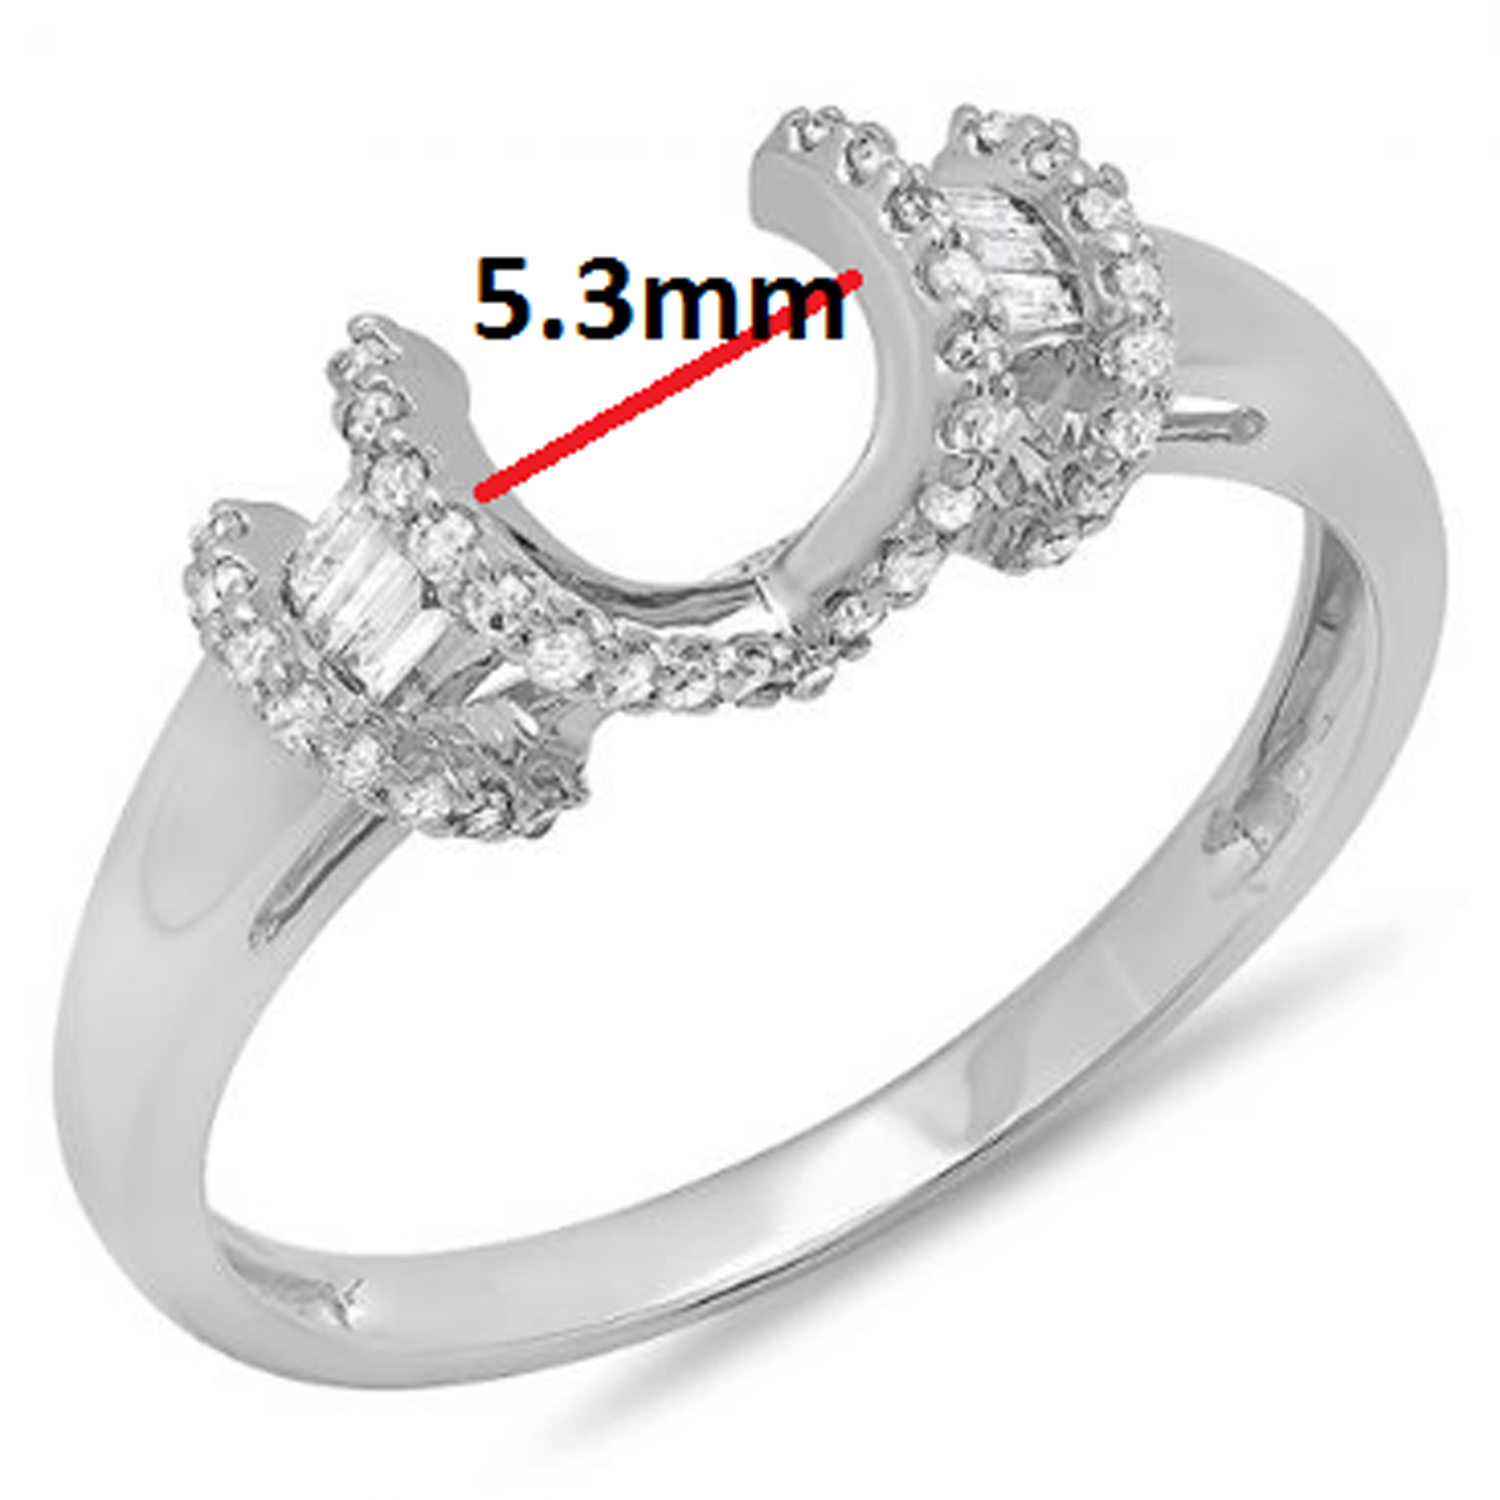 0.20 Carat (ctw) 14k White Gold Round & Baguette Diamond Ladies Anniversary Wedding Band Enhancer Guard Ring 1/5 CT